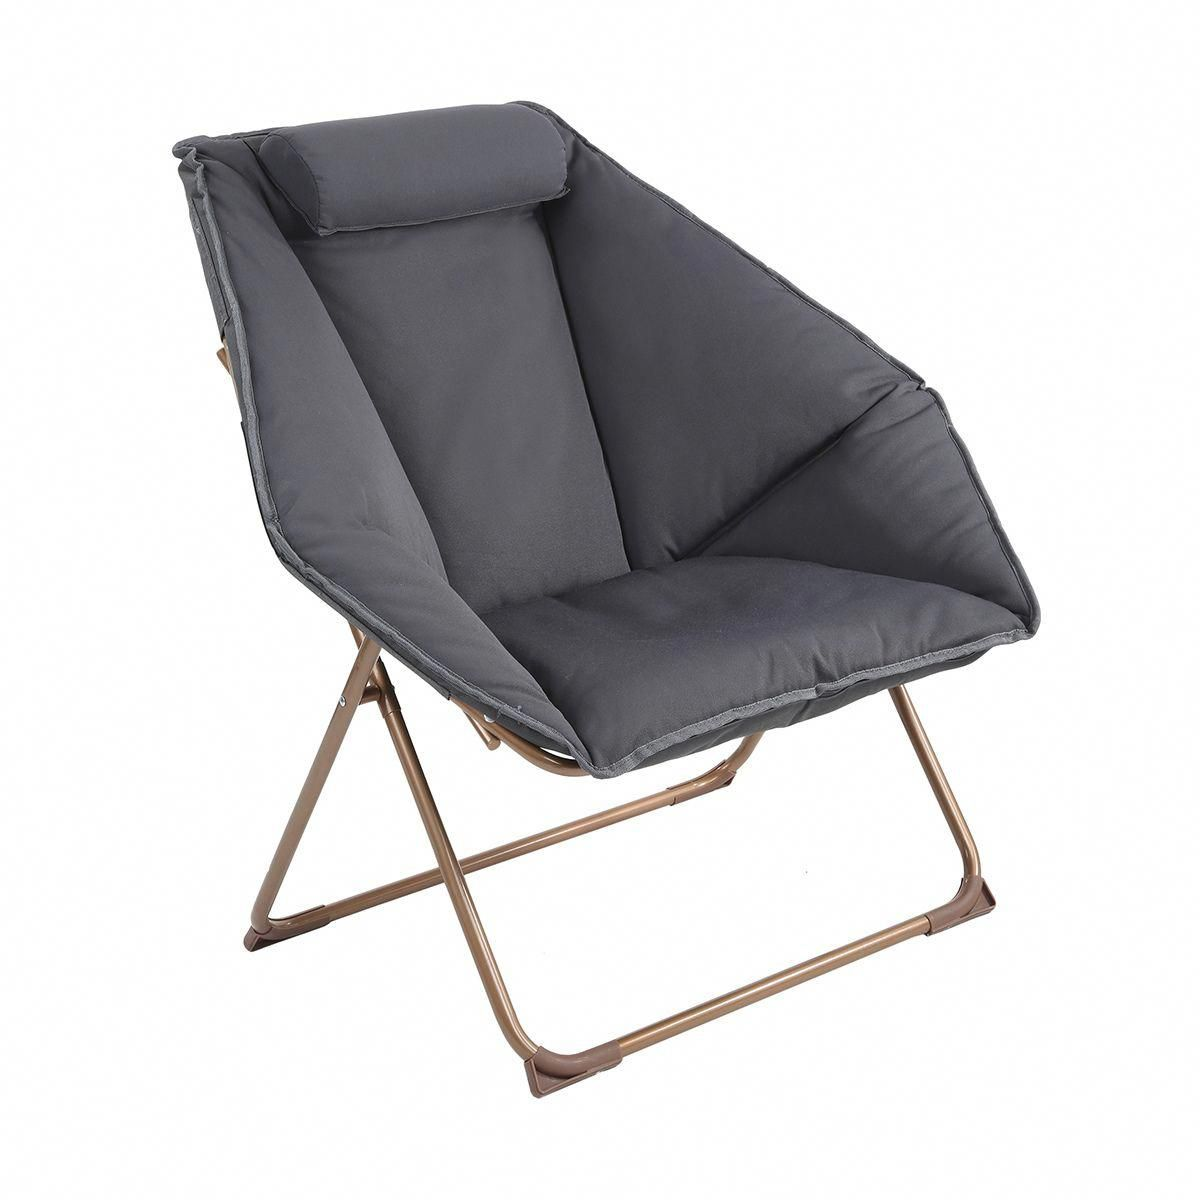 Diamond Chair Kmart Campingchairs With Images Camping